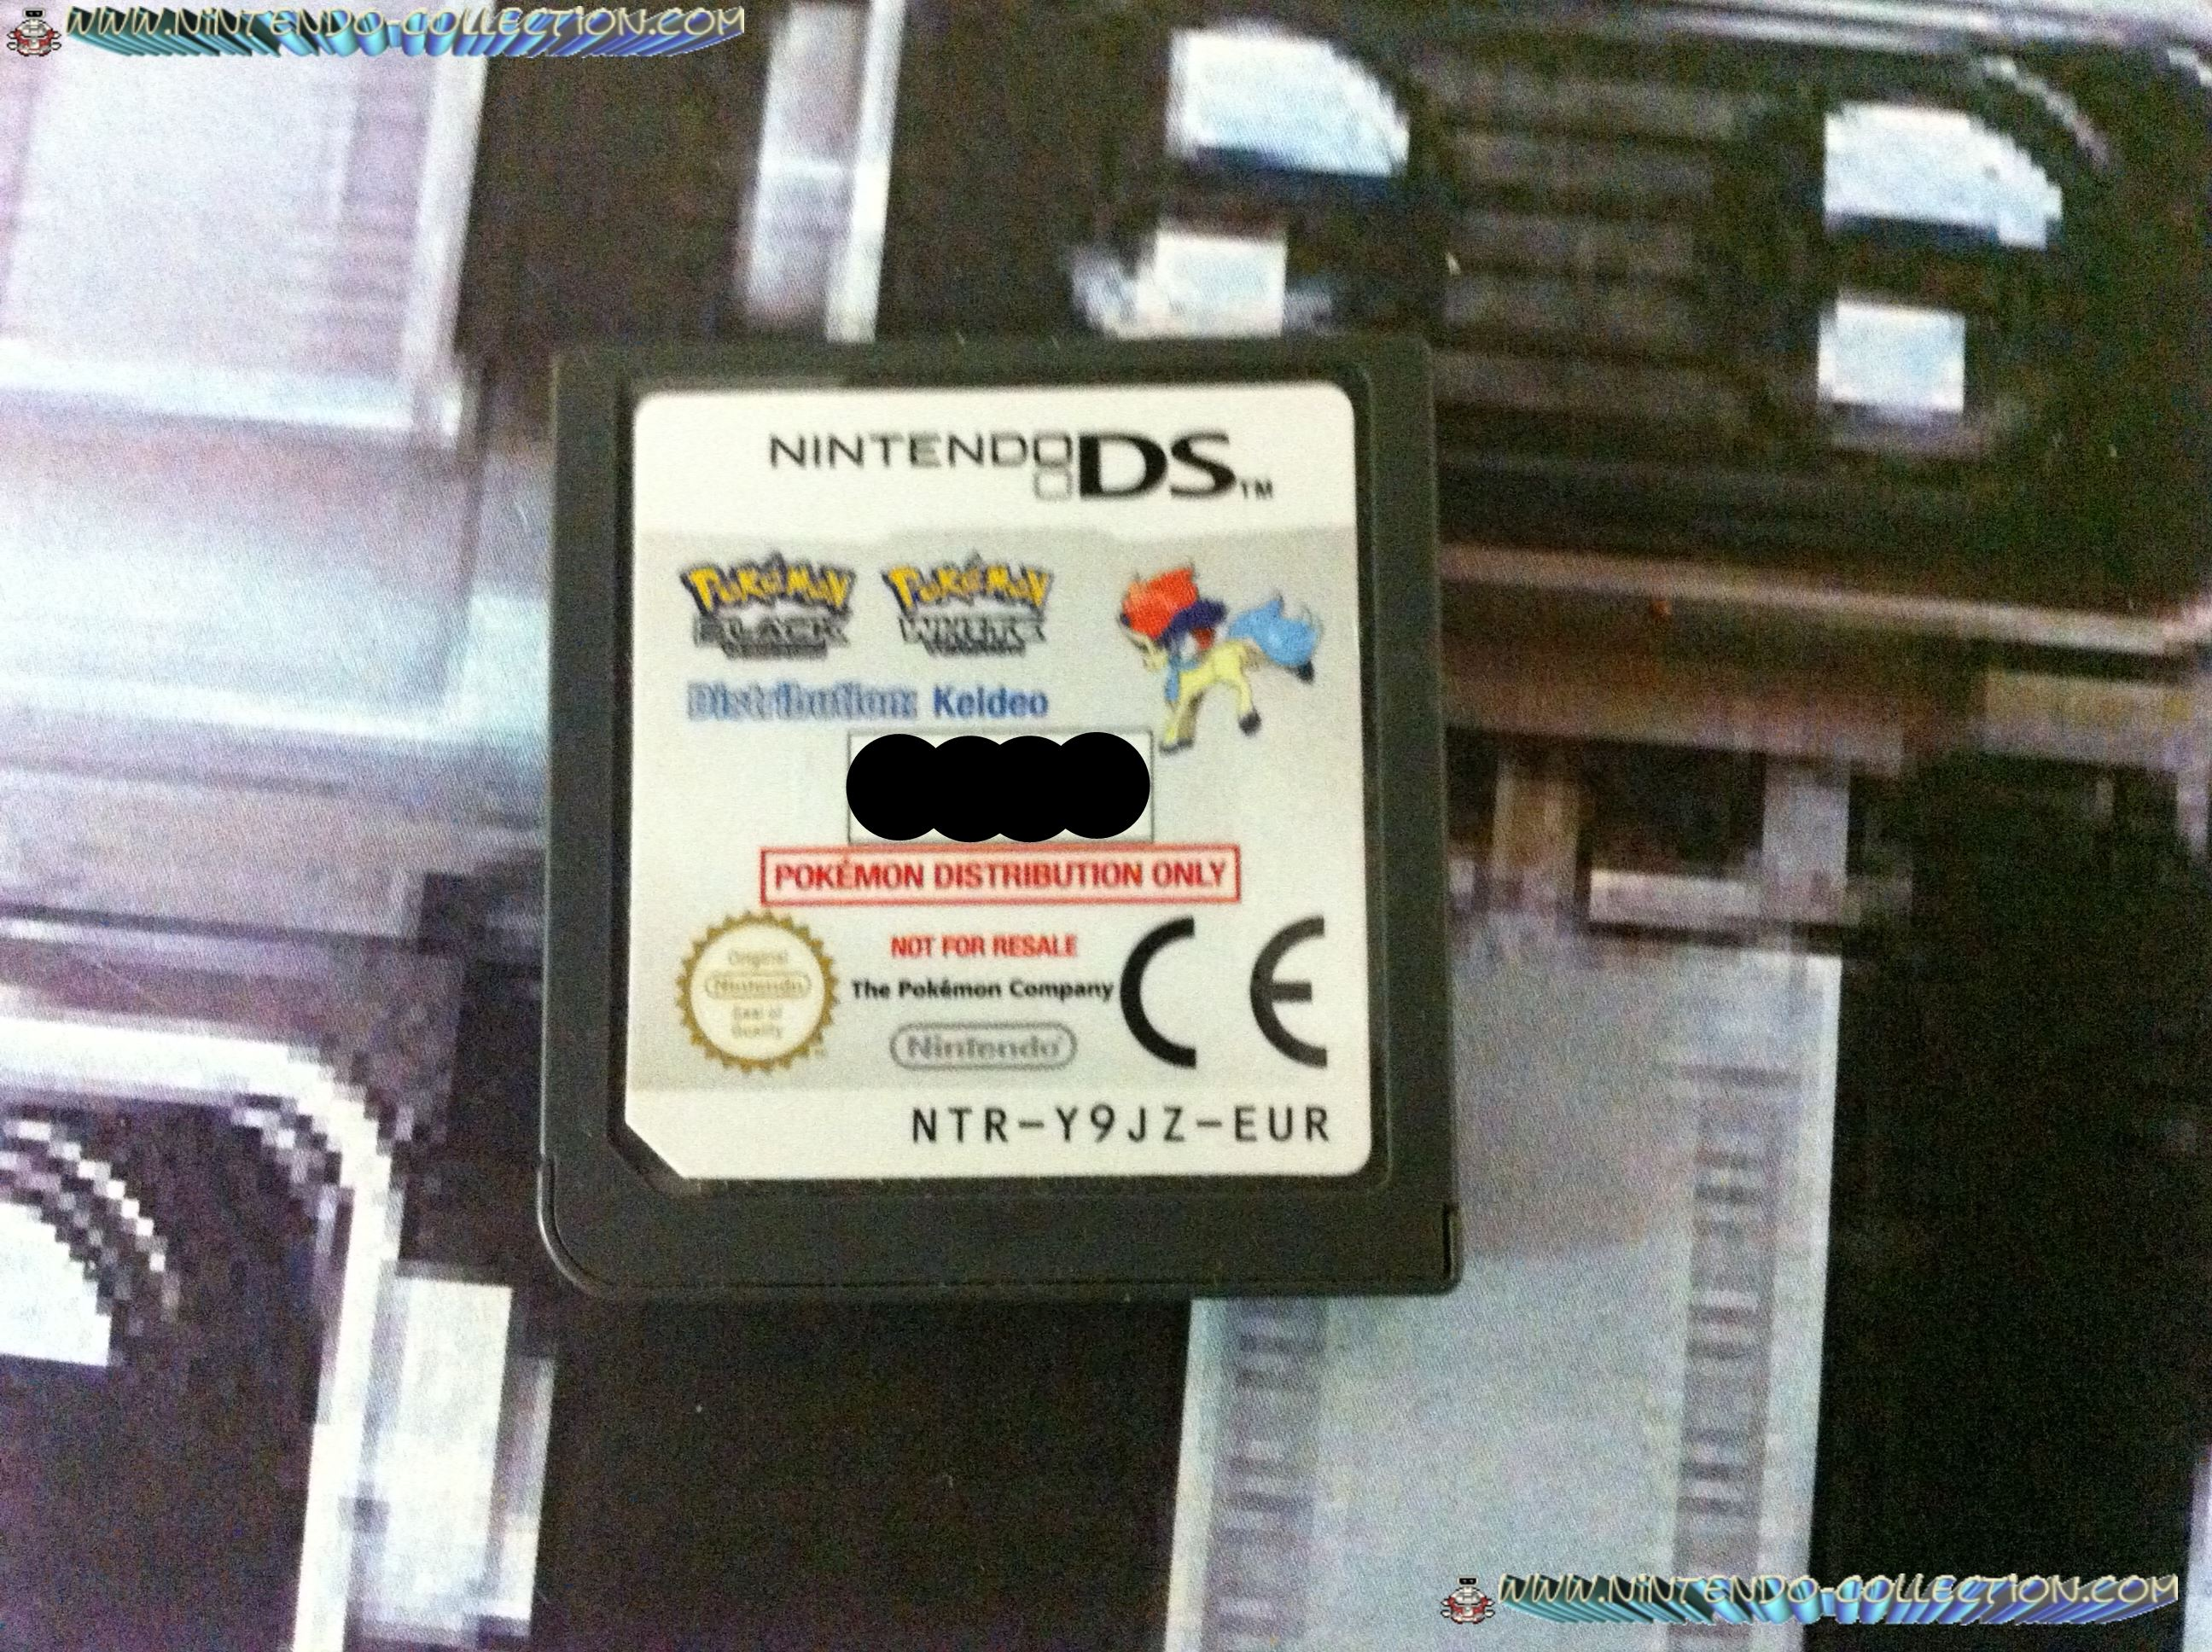 www.nintendo-collection.com - Demo DS 3DS - Not For Resale - Europe Keldeo Pokemon Distribution